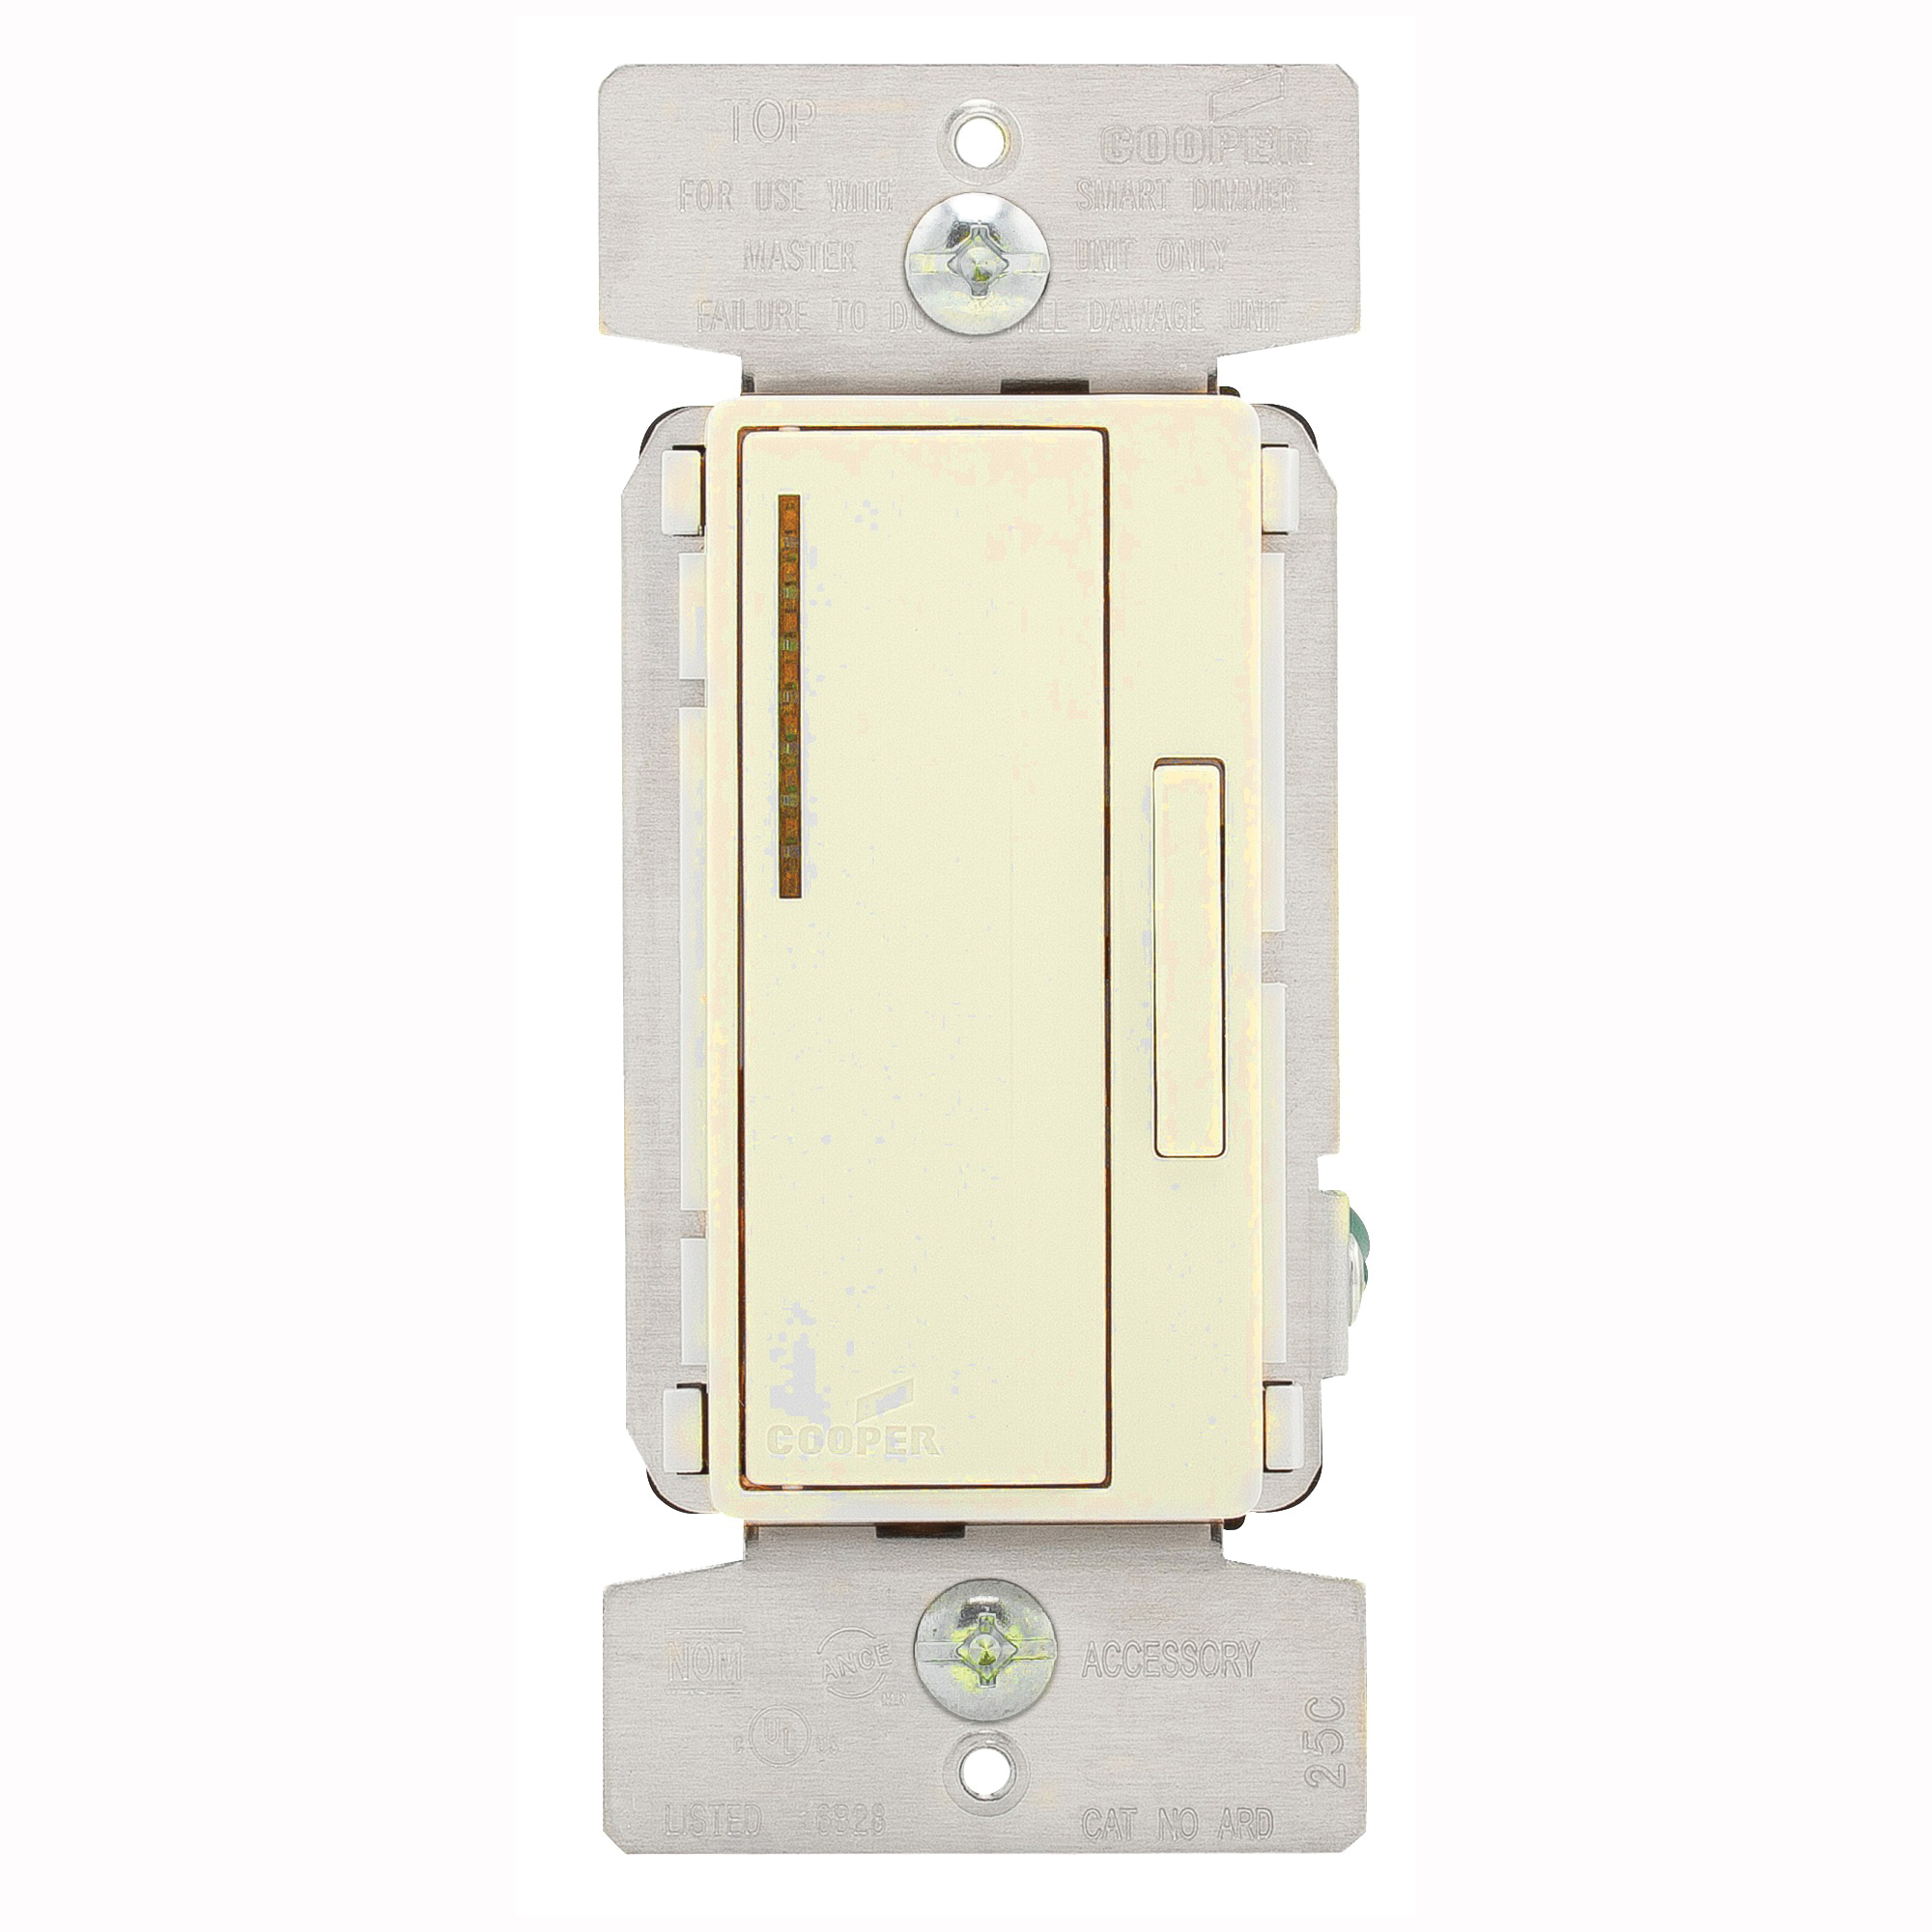 Picture of Eaton Wiring Devices ARD-C2-K-L Accessory Dimmer, 1-Pole, 120 V, 60 Hz, Ivory/Light Almond/White